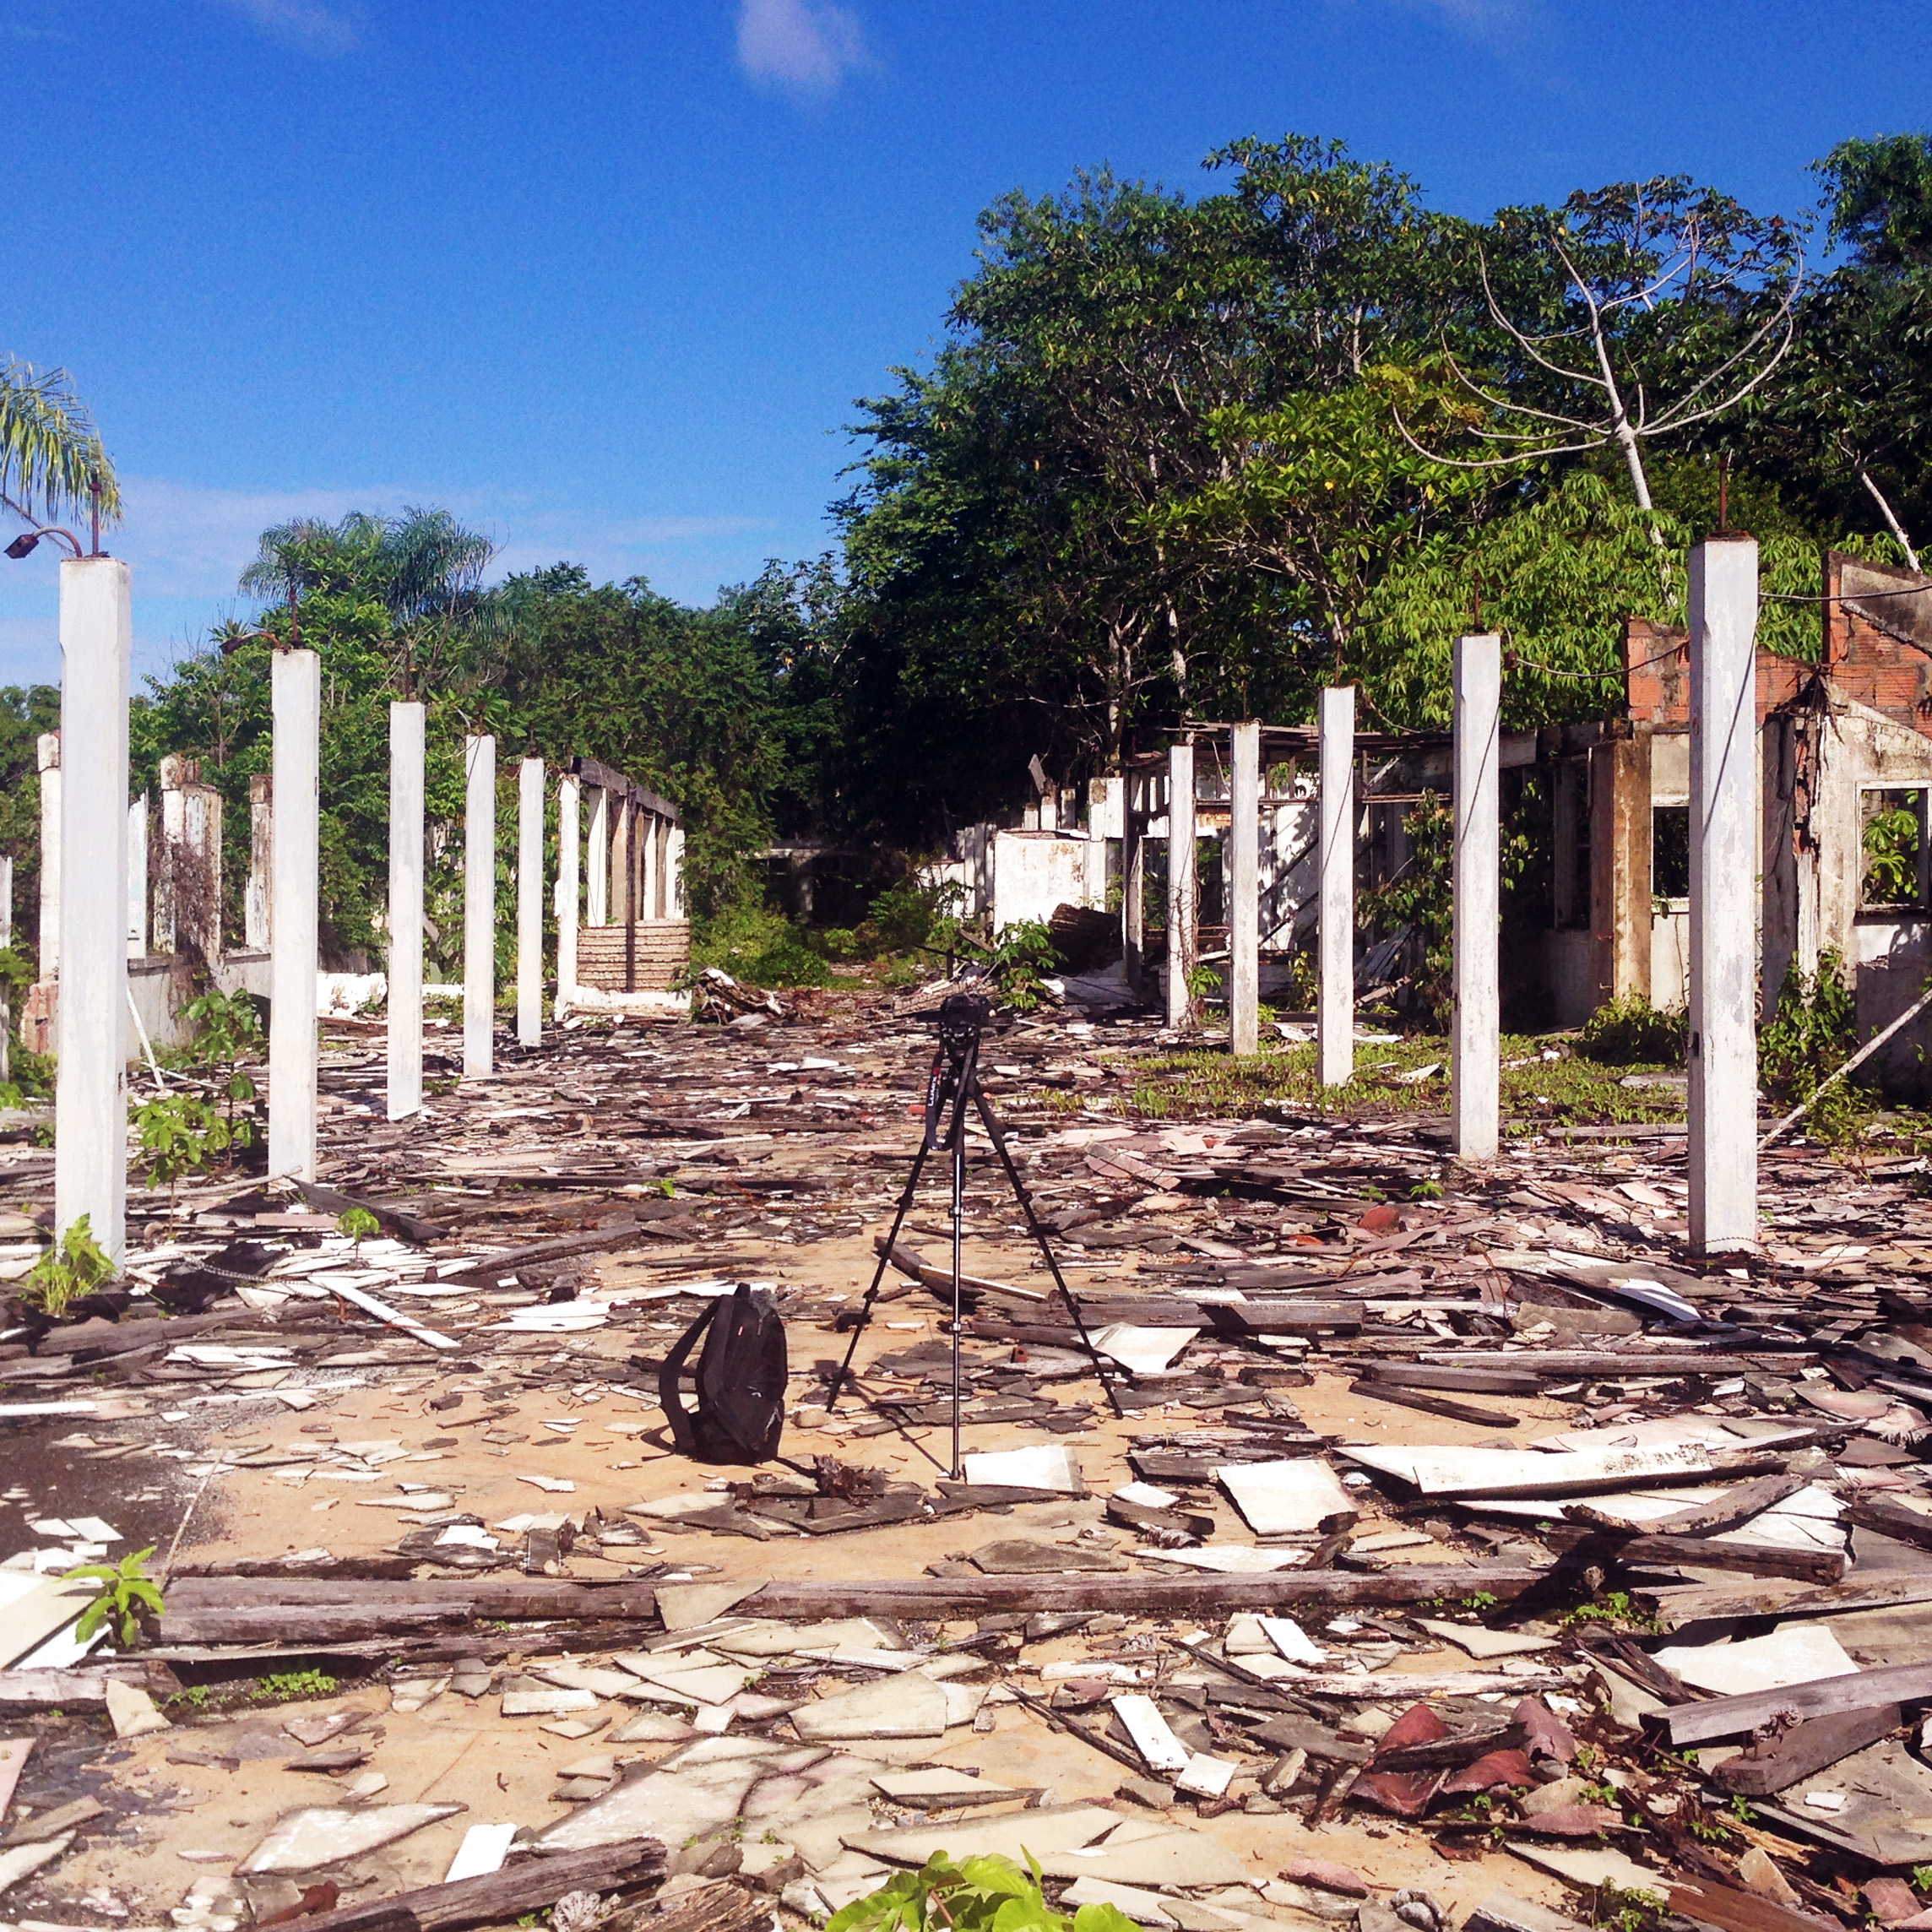 The remains of the once most modern hospital in Brazil.